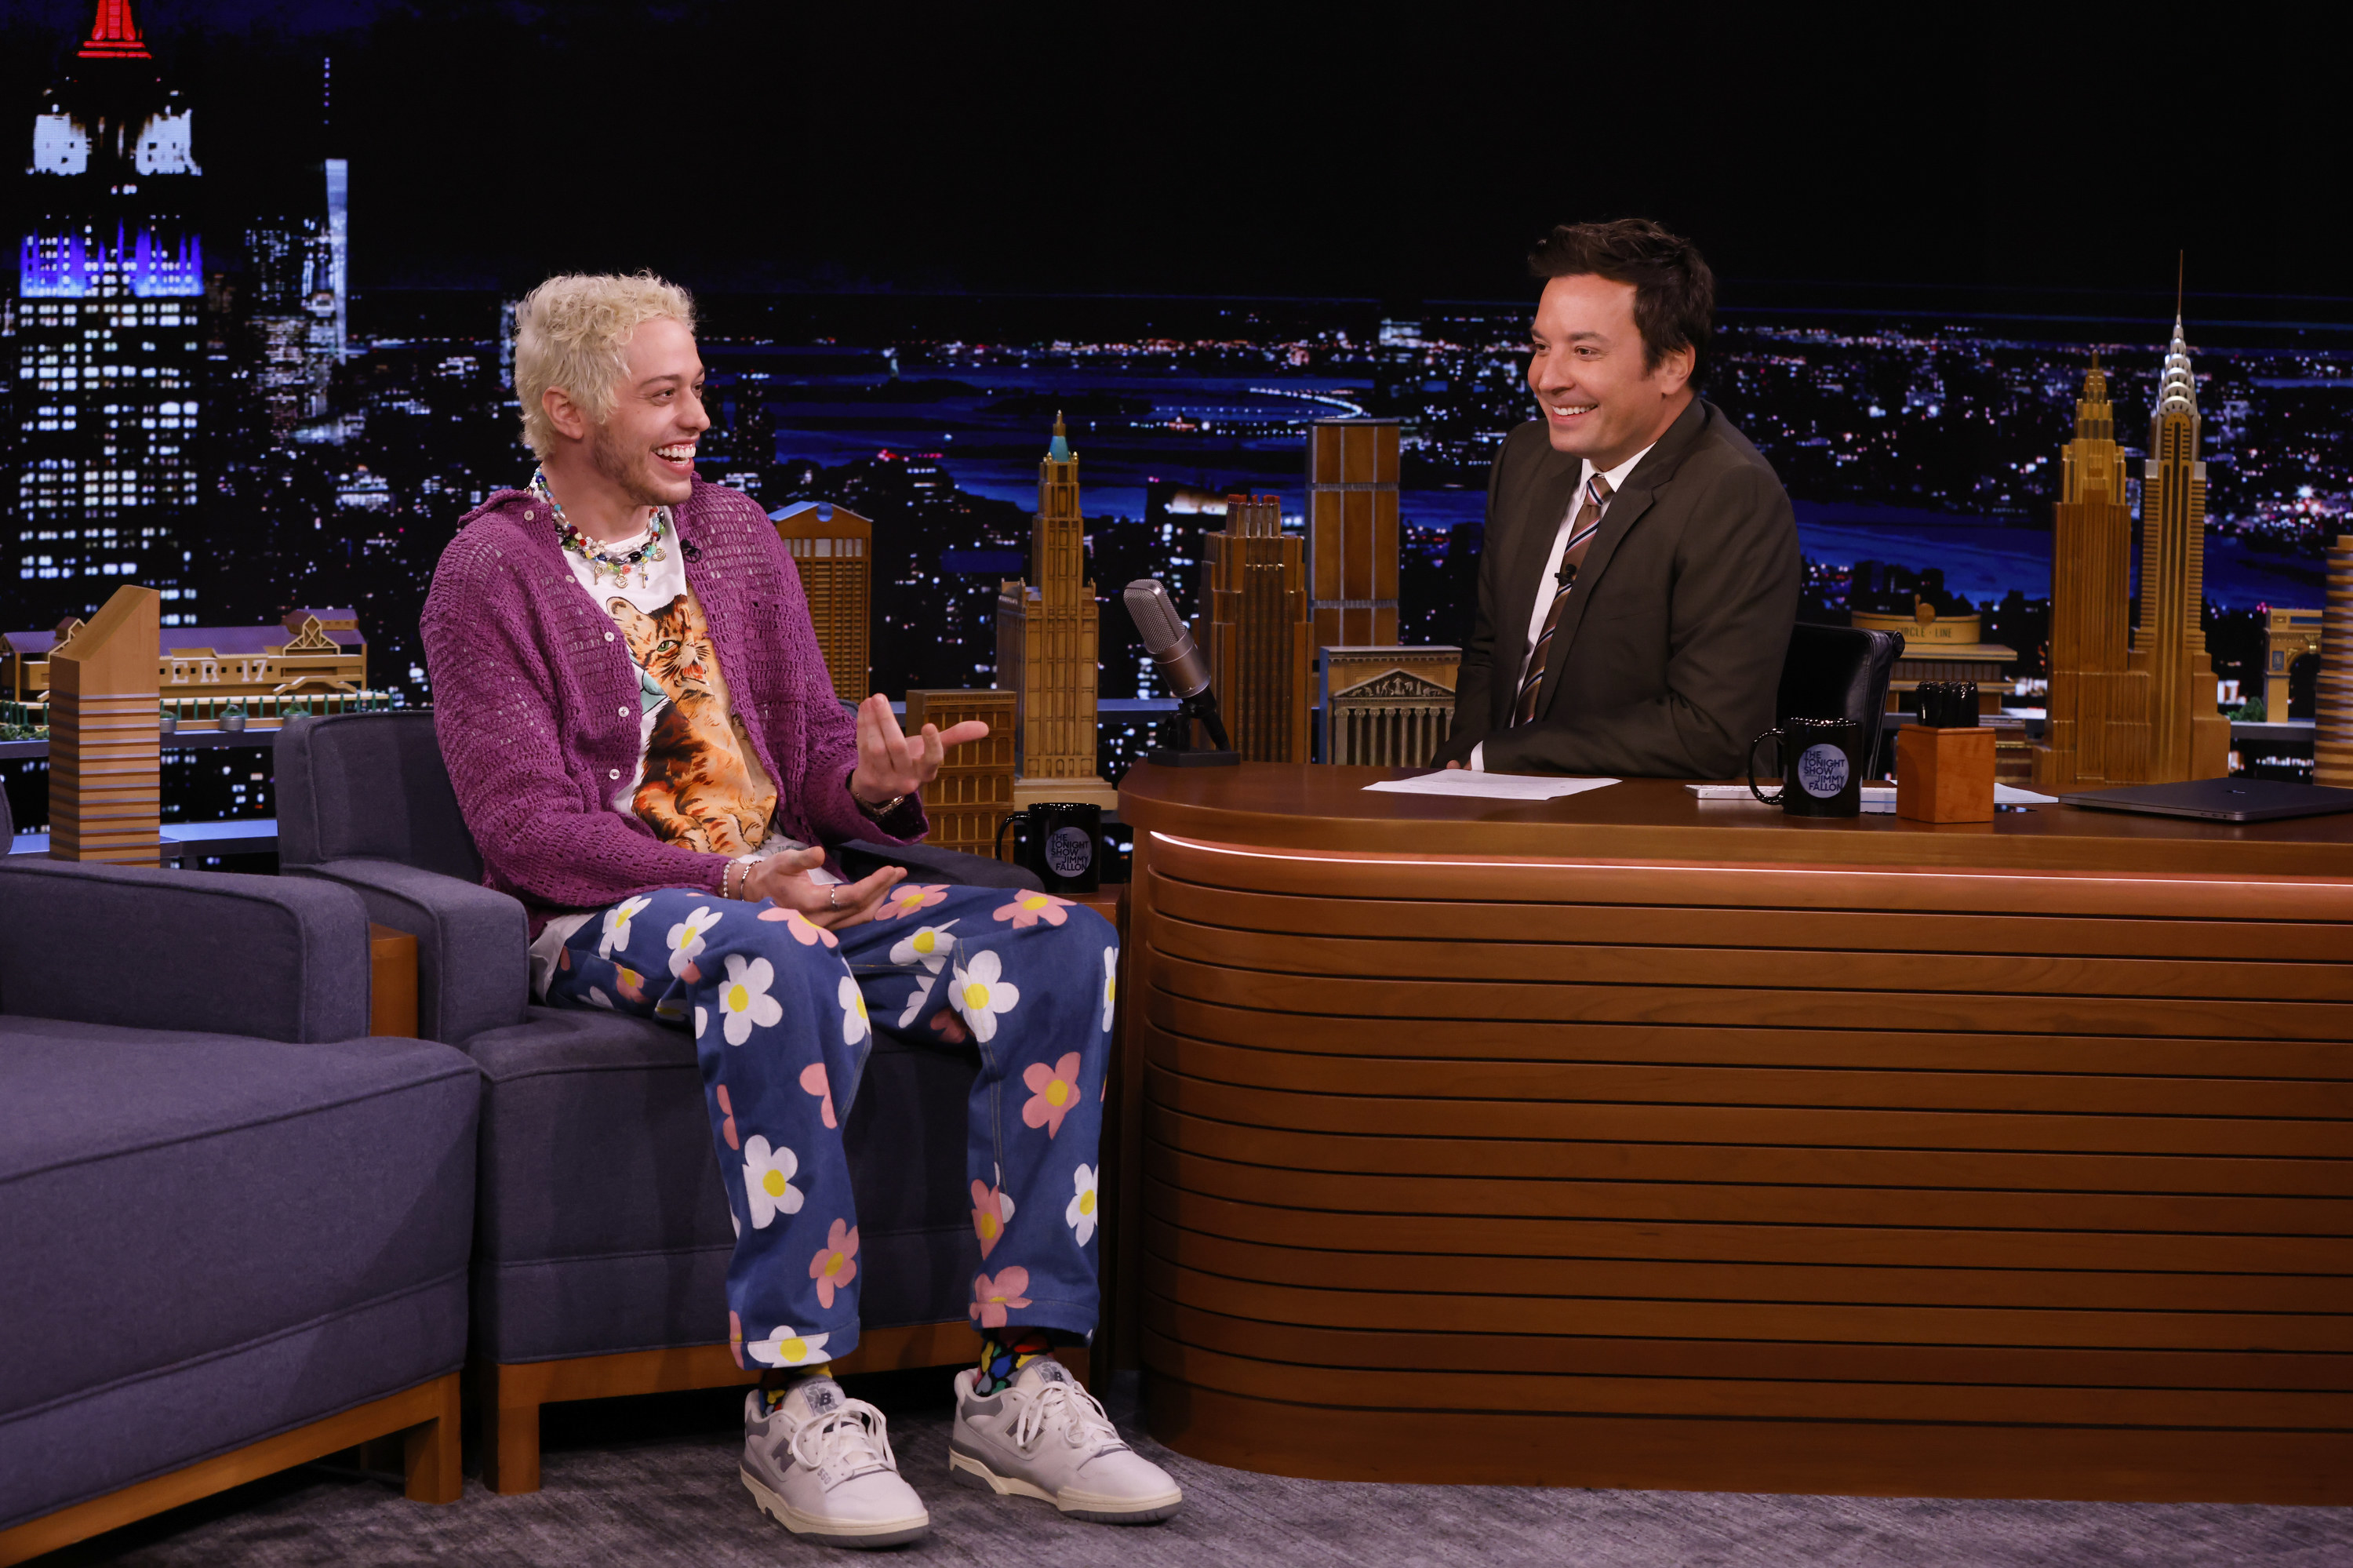 Pete wearing a cardigan and floral print pants during his interview